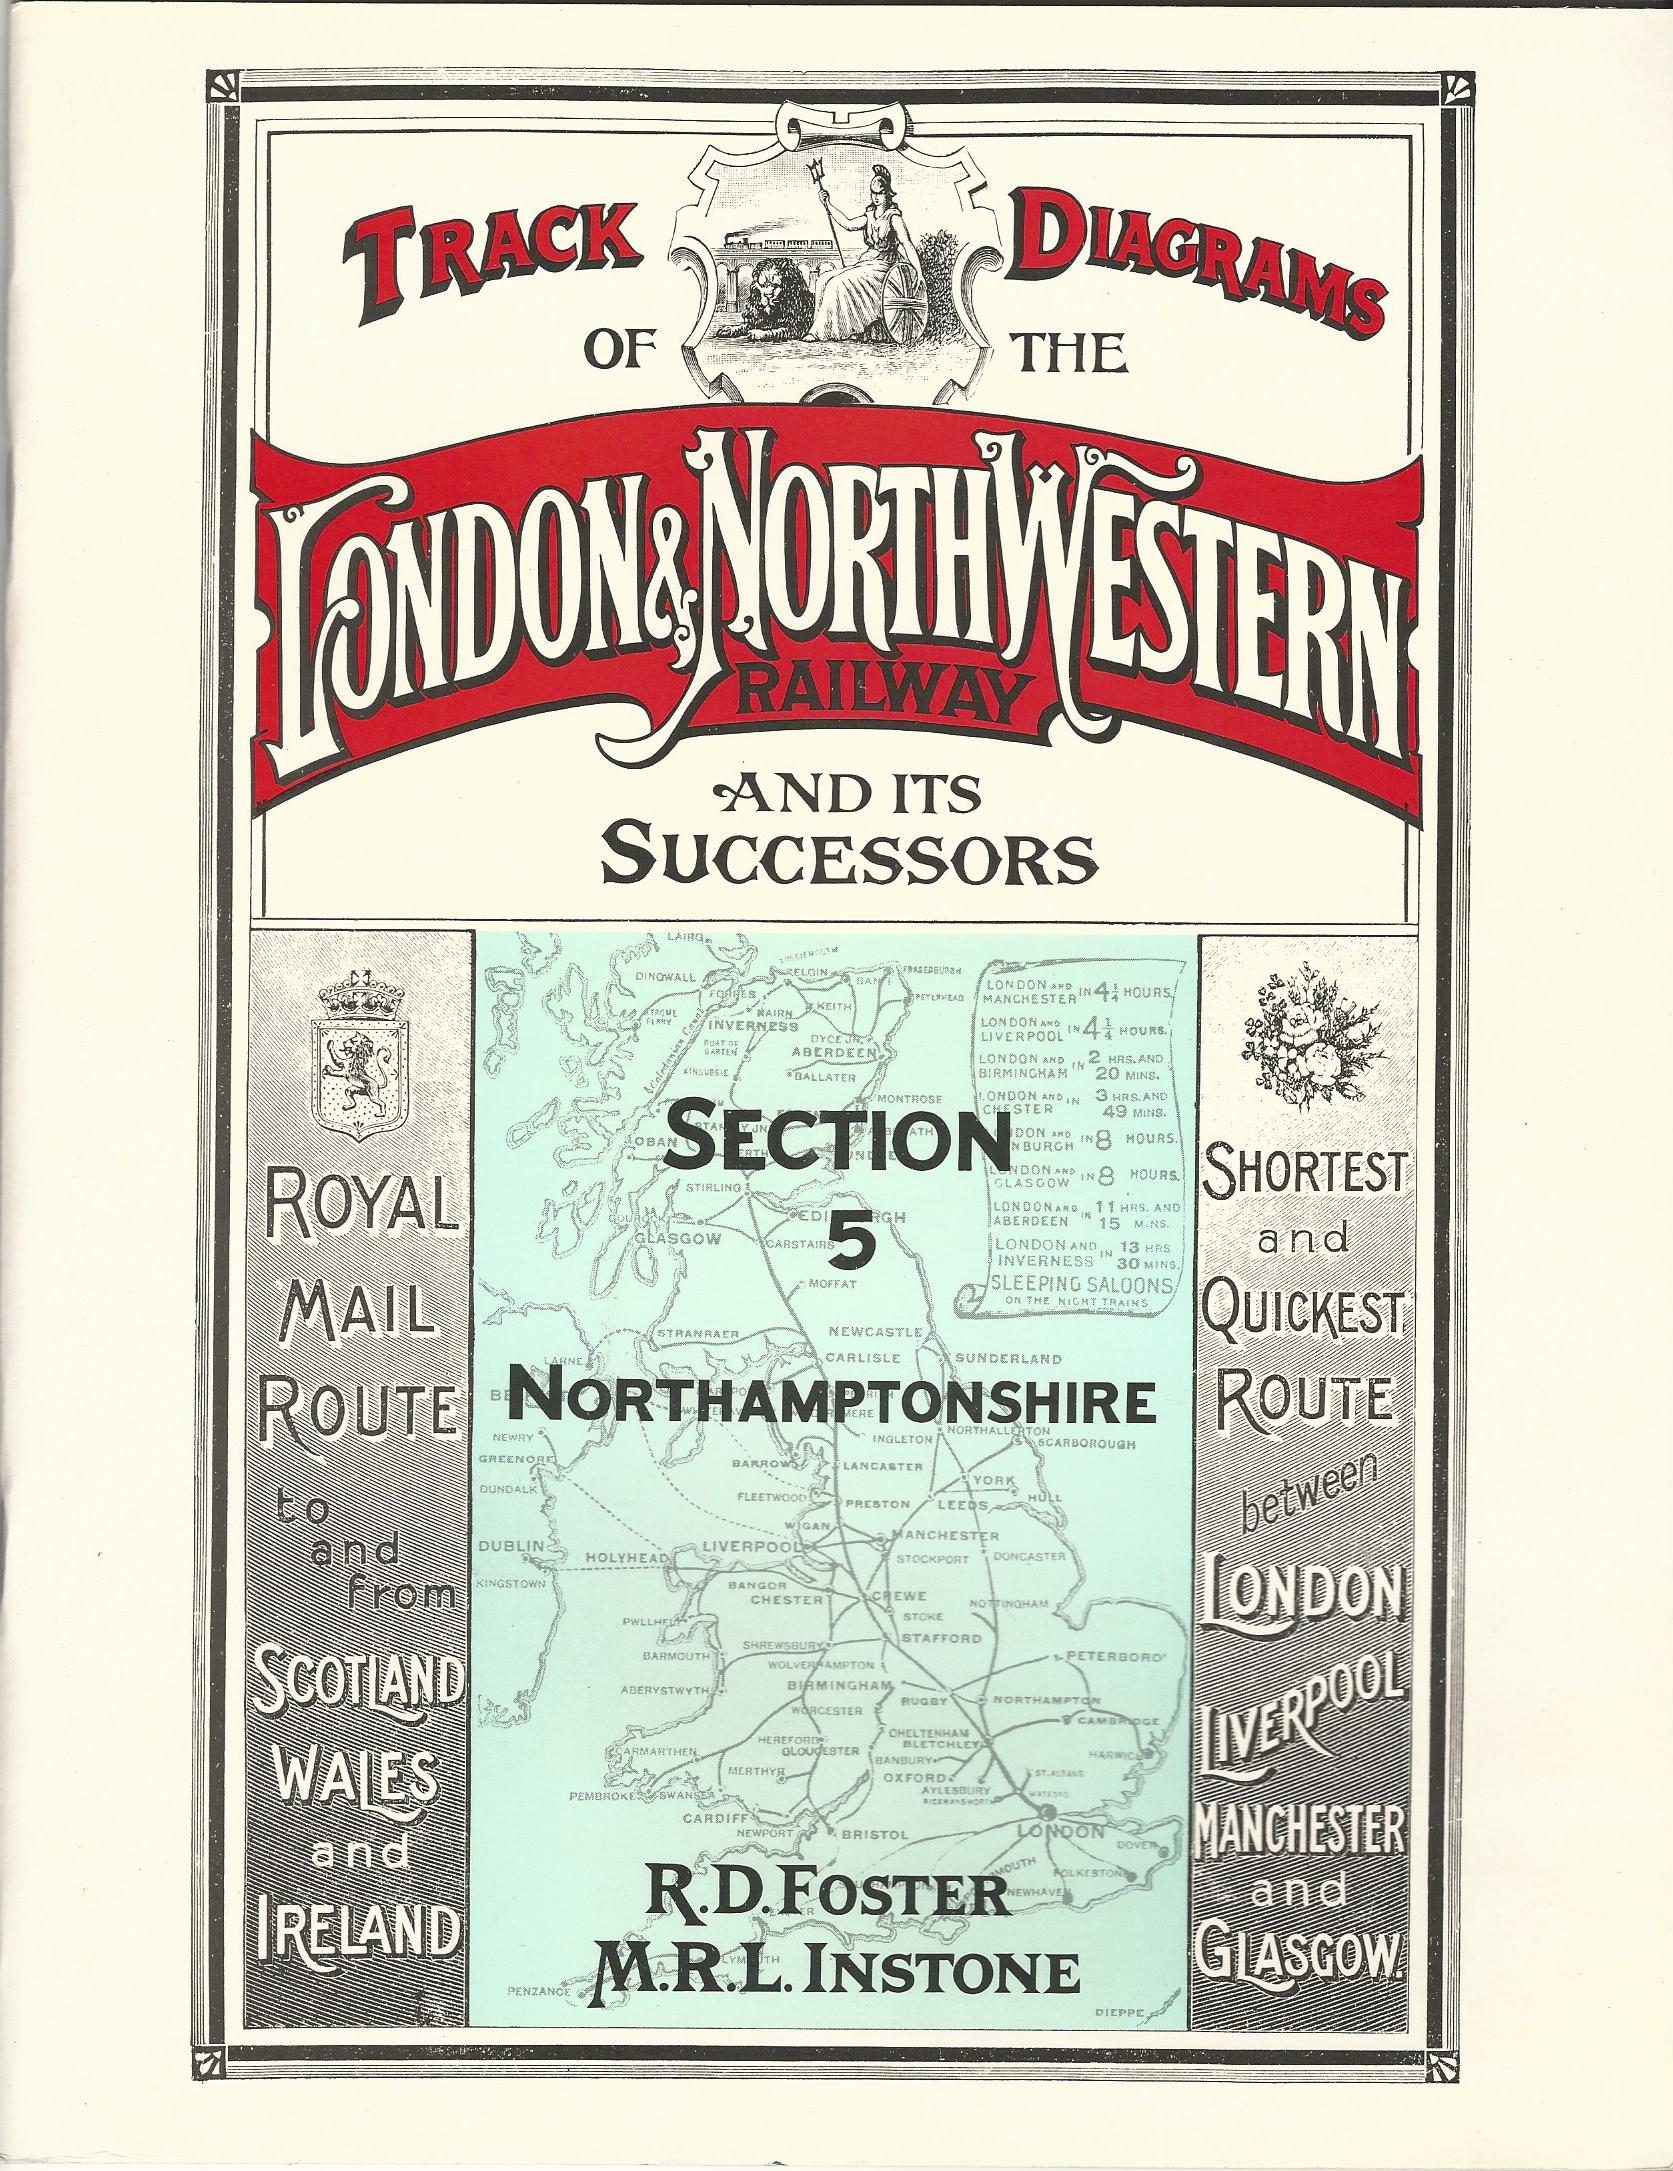 Image for Track Layout Diagrams of the London & North Western Railway, section 5: Northamptonshire: Northamptonshire Section 5